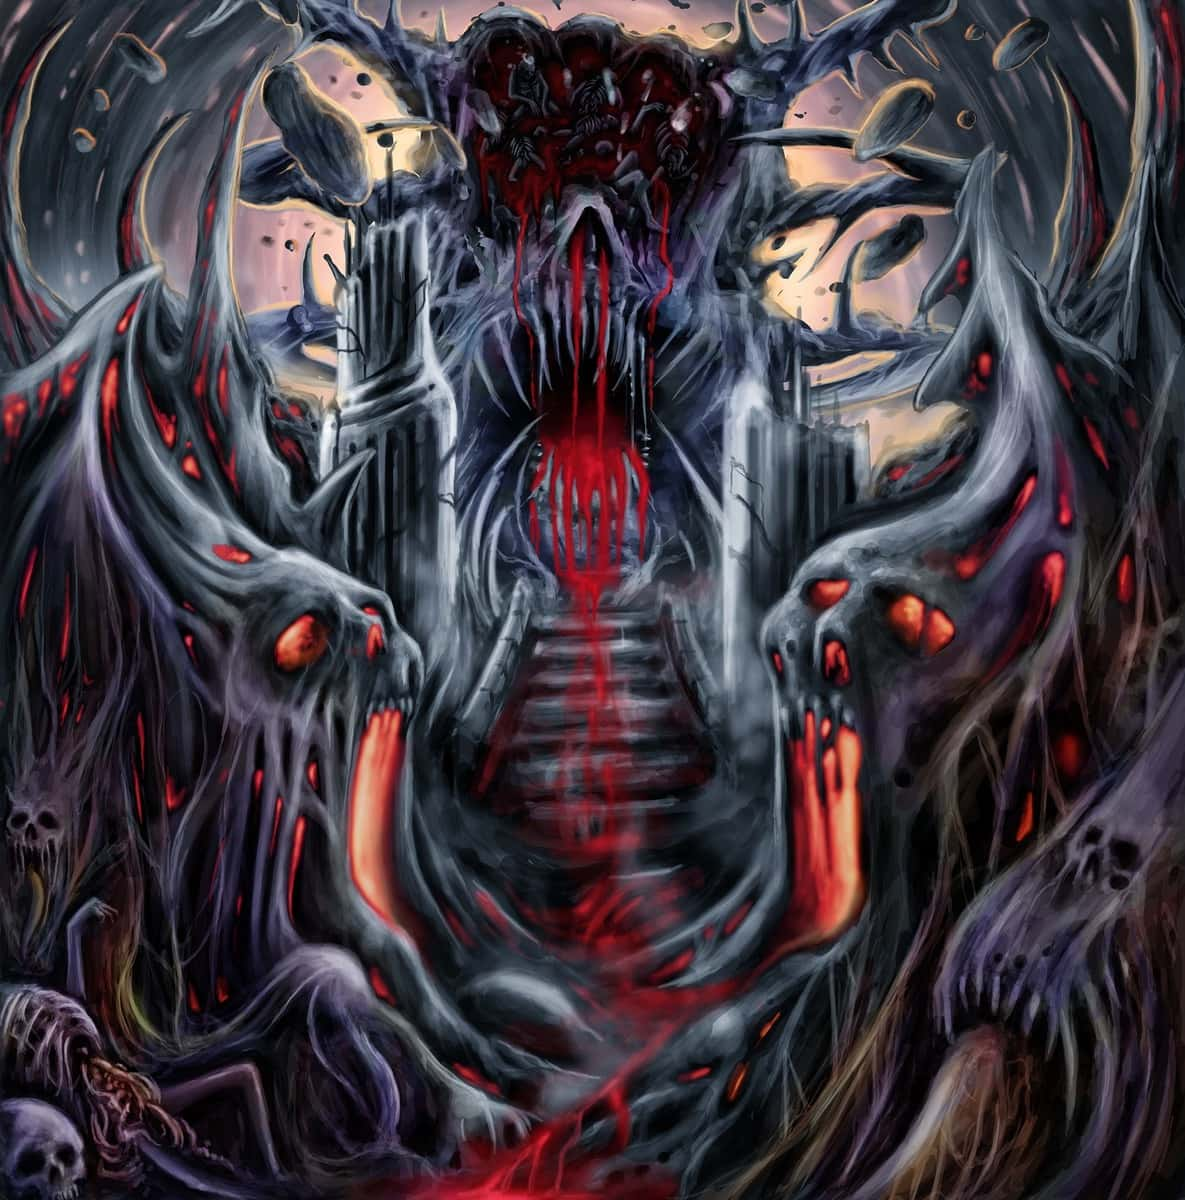 INHUMAN DEPRAVITY (TUR) – Nocturnal carnage by the unholy desecrator, 2015